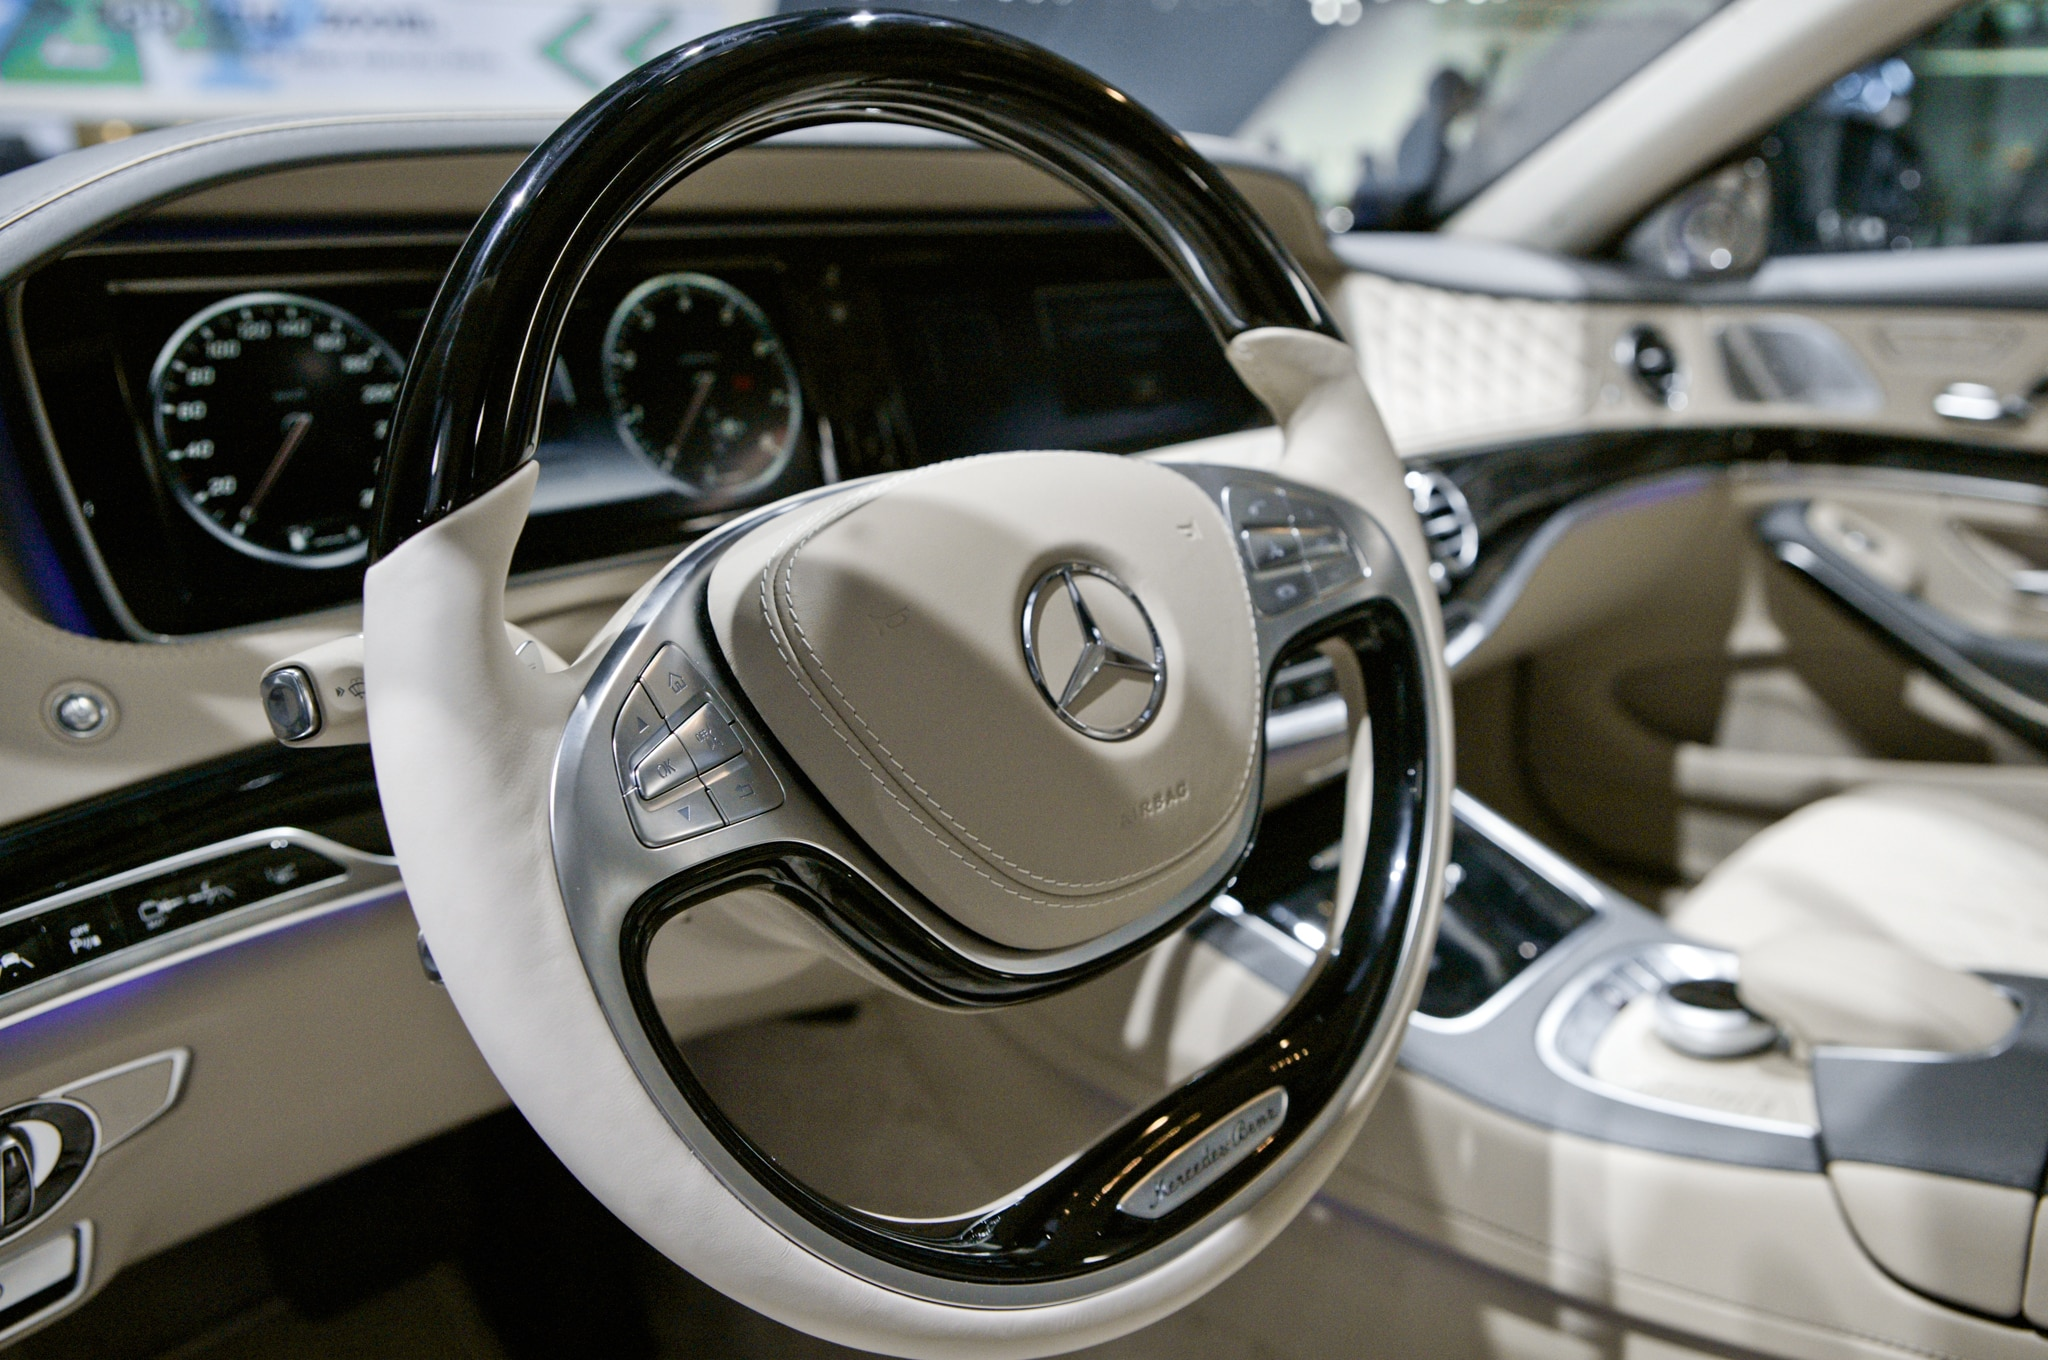 https://st.automobilemag.com/uploads/sites/11/2014/01/2015-Mercedes-Benz-S600-steering-wheel.jpg